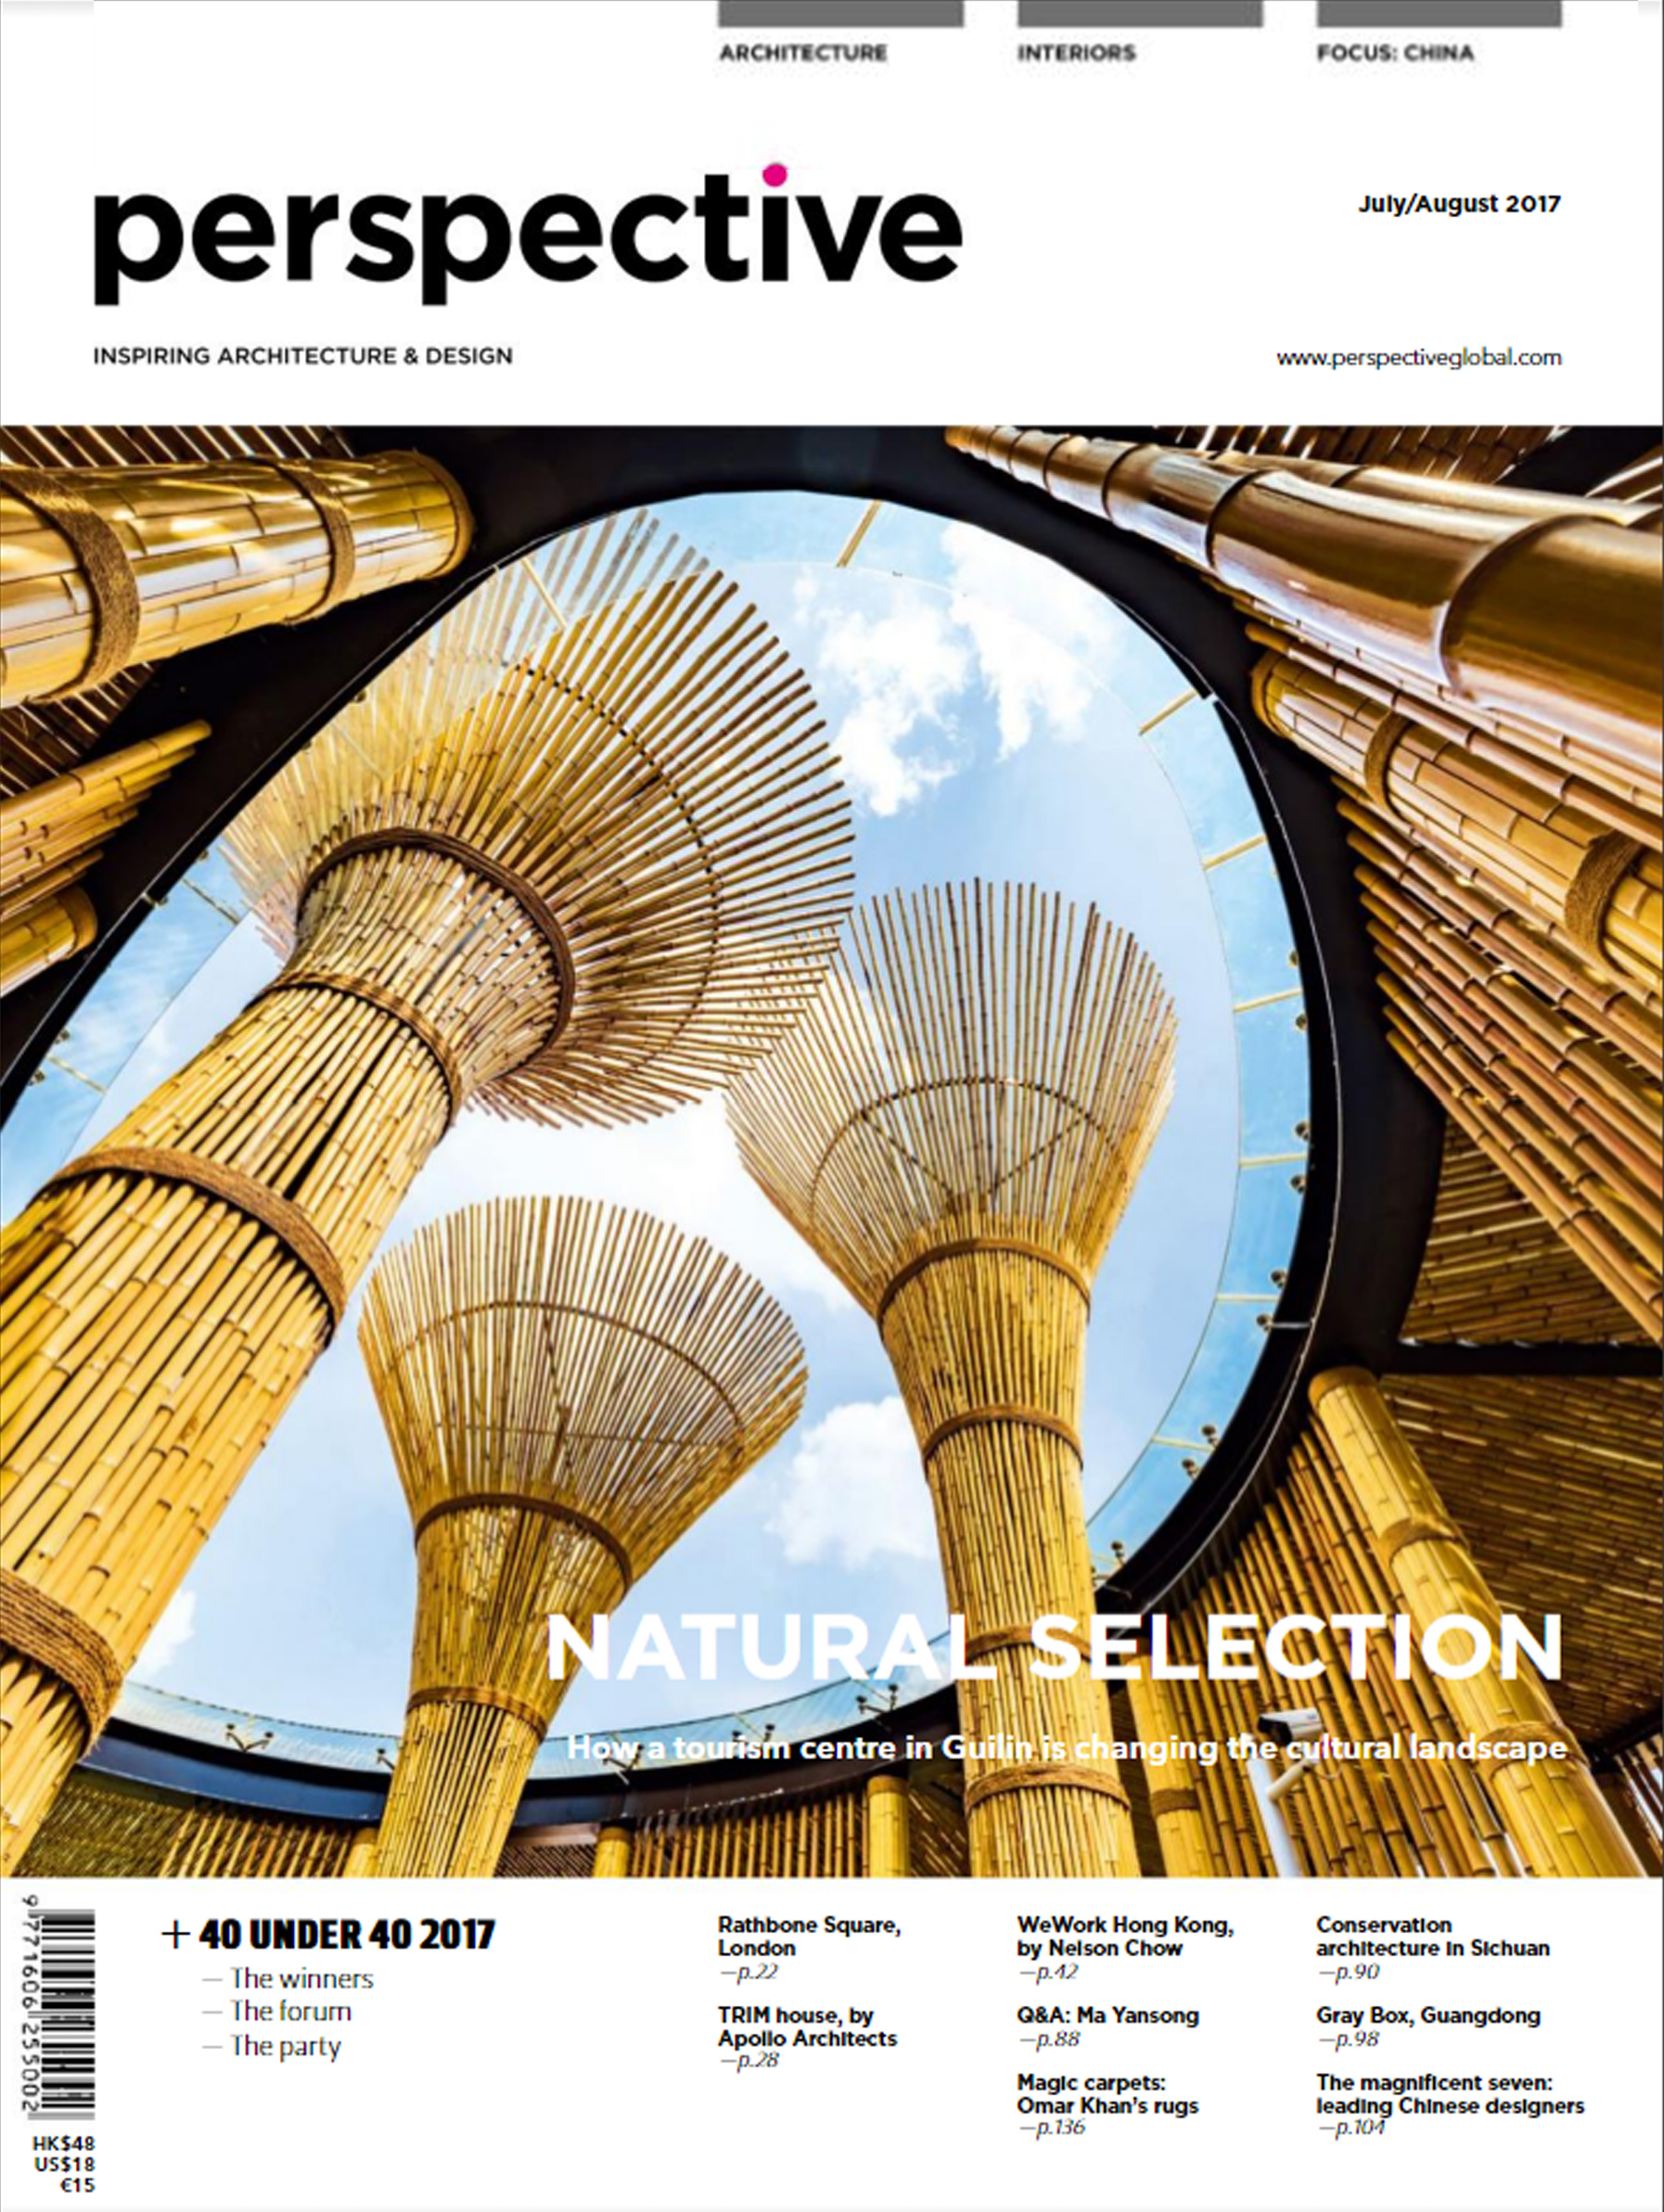 Issue Jul/Aug 2017 of Perspective